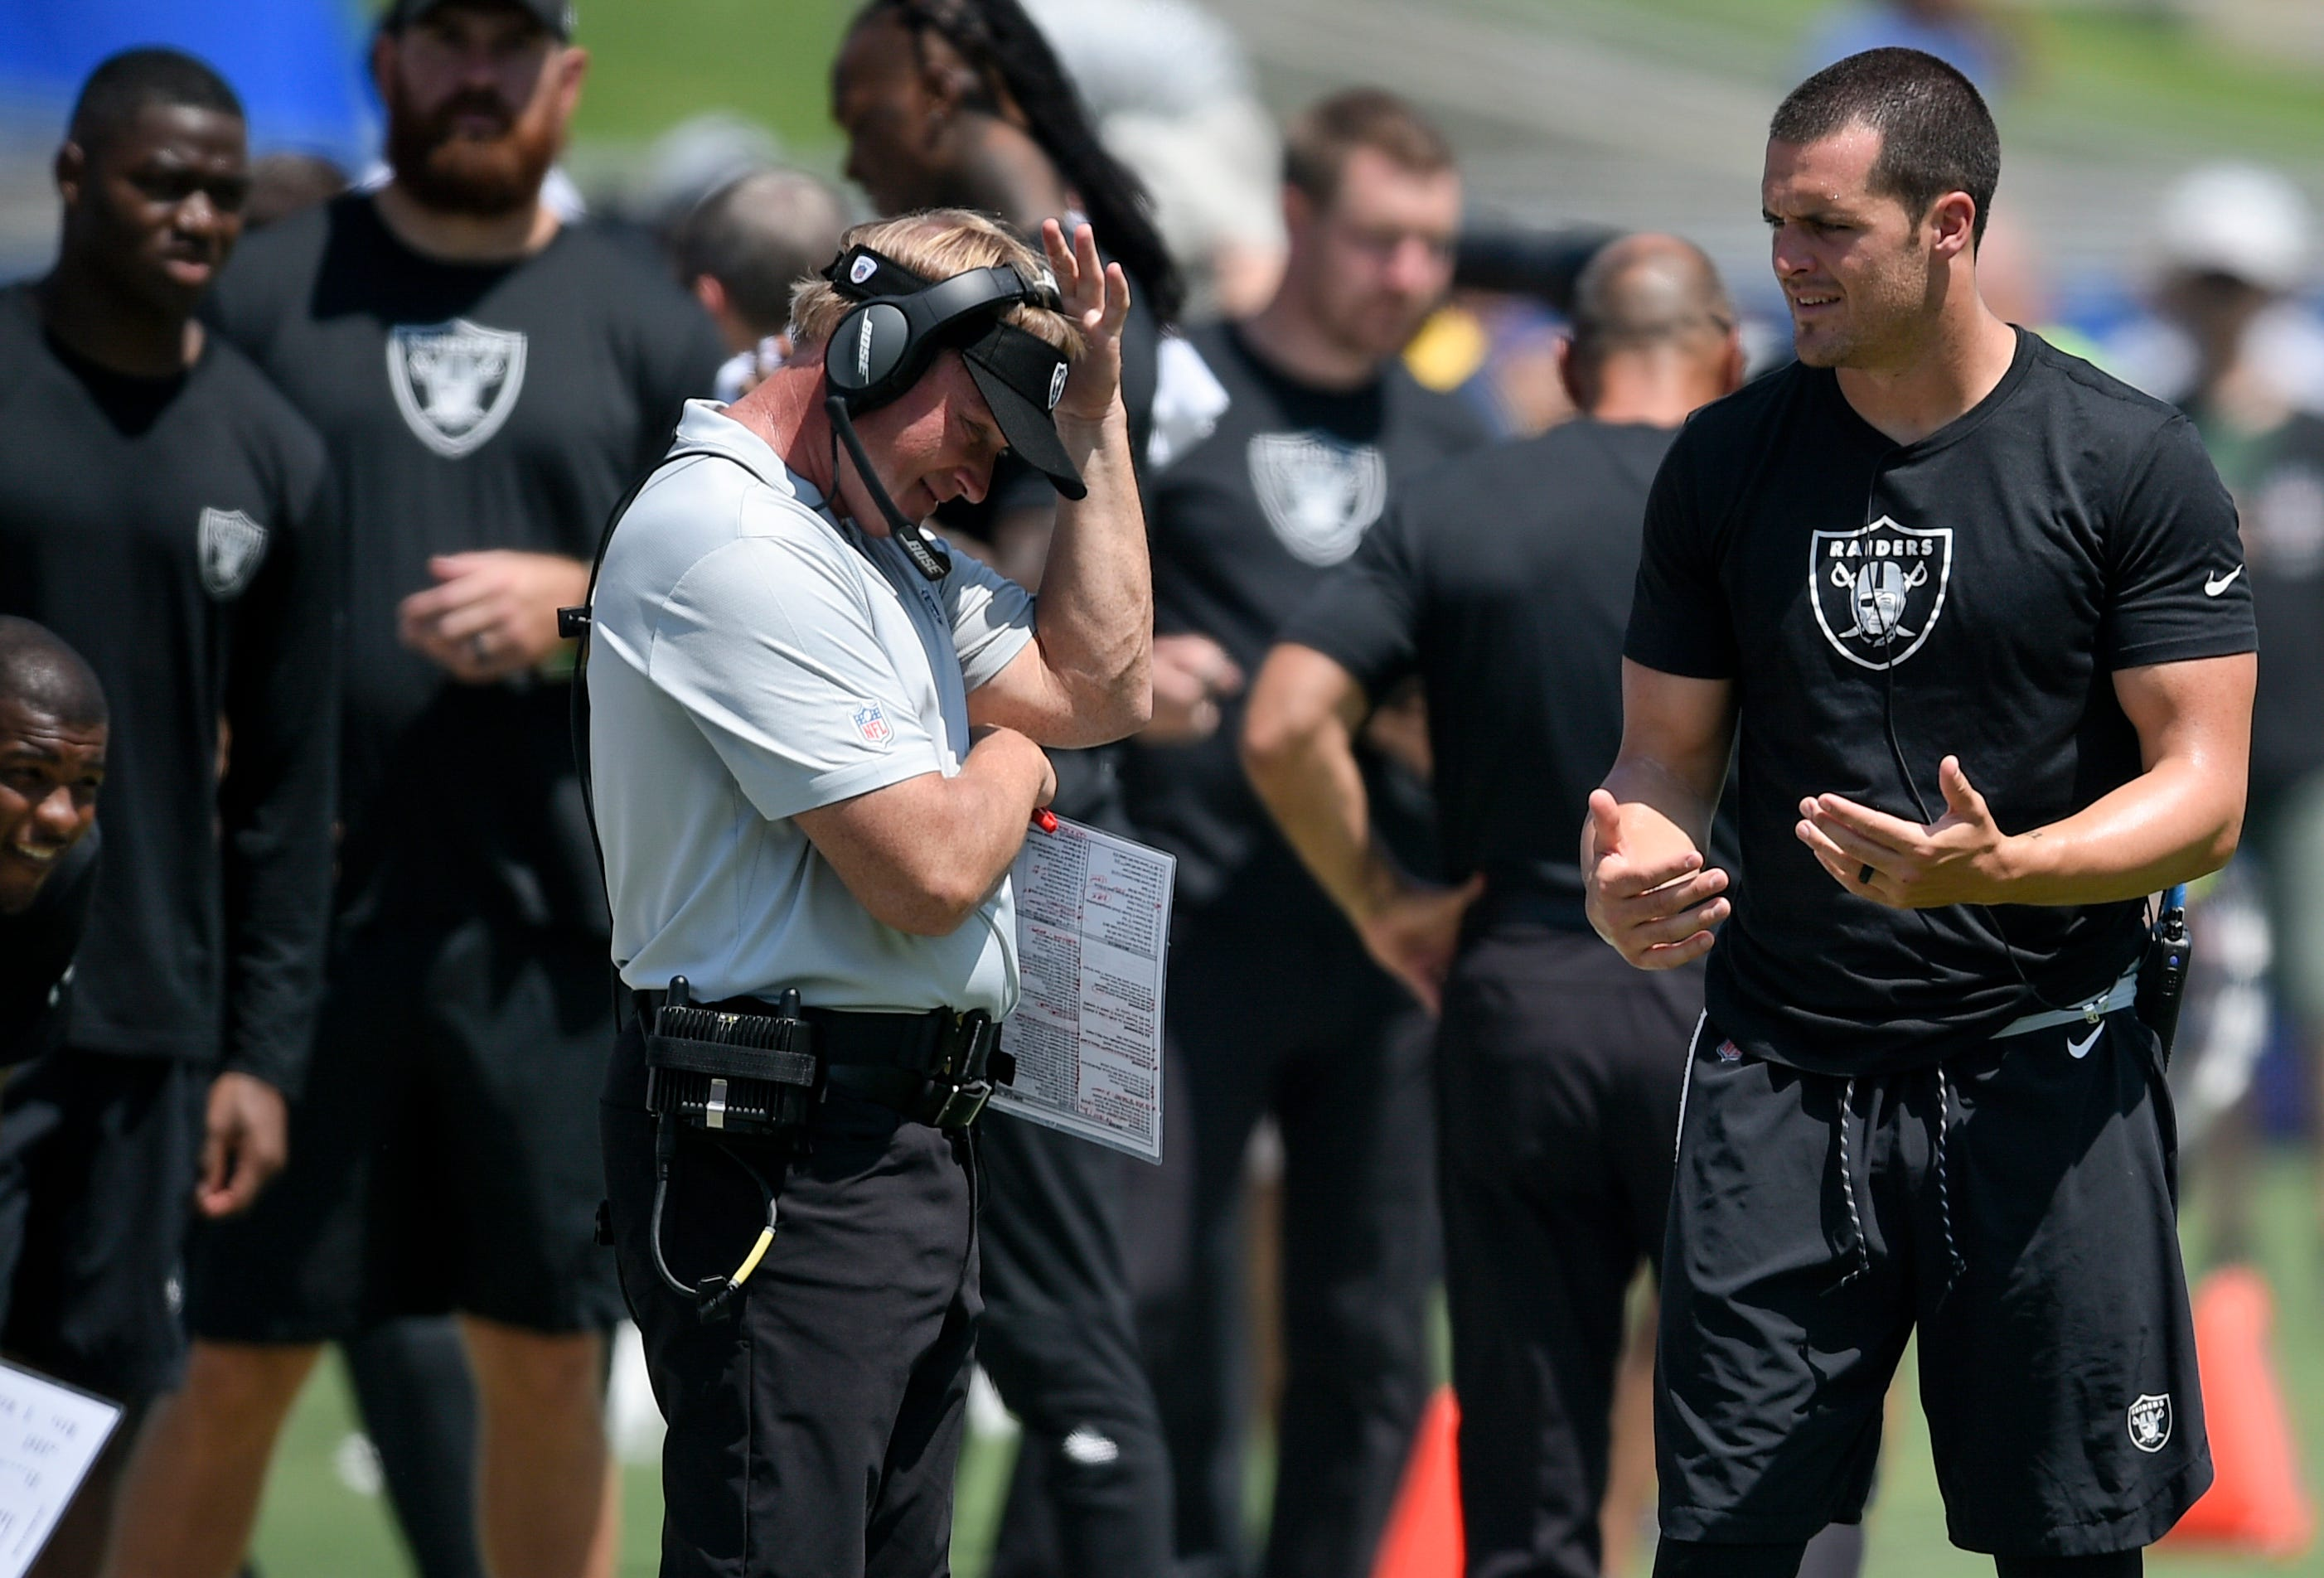 Derek Carr's struggles mirror Raiders woes past 2 years